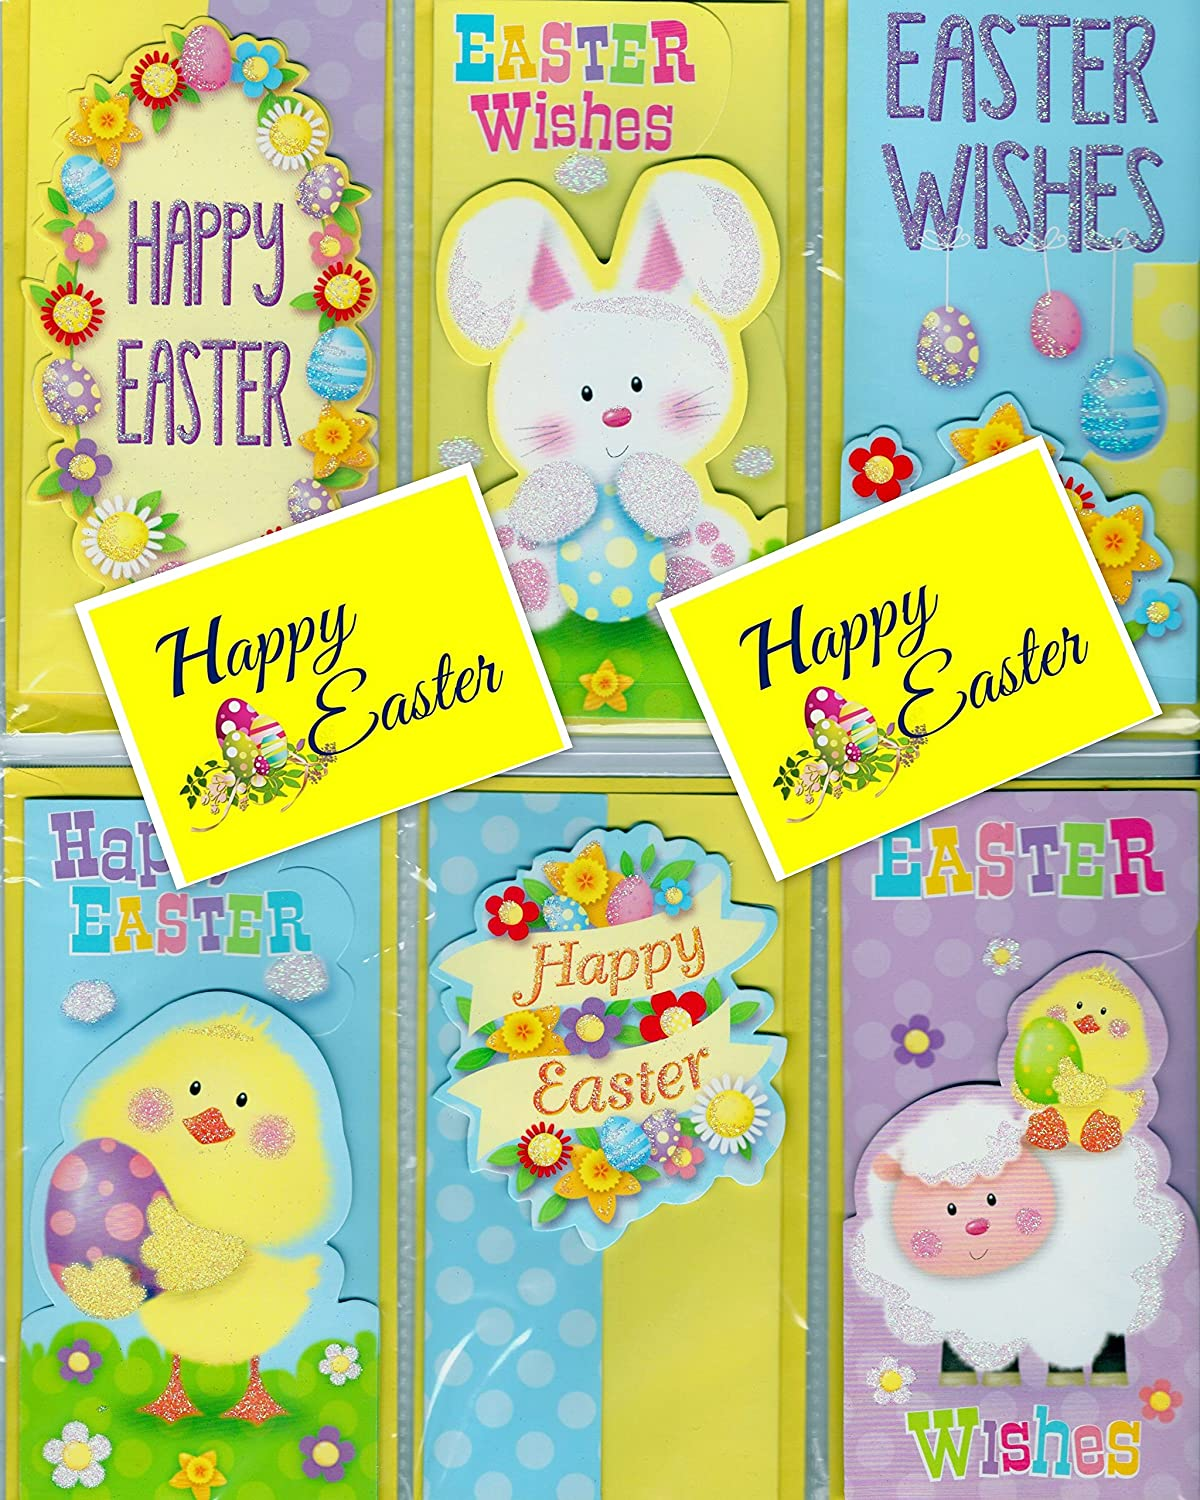 12 handmade style 3d easter gift cardmoney wallet with 12 12 handmade style 3d easter gift cardmoney wallet with 12 colourful gift tags and envelopes amazon kitchen home negle Choice Image